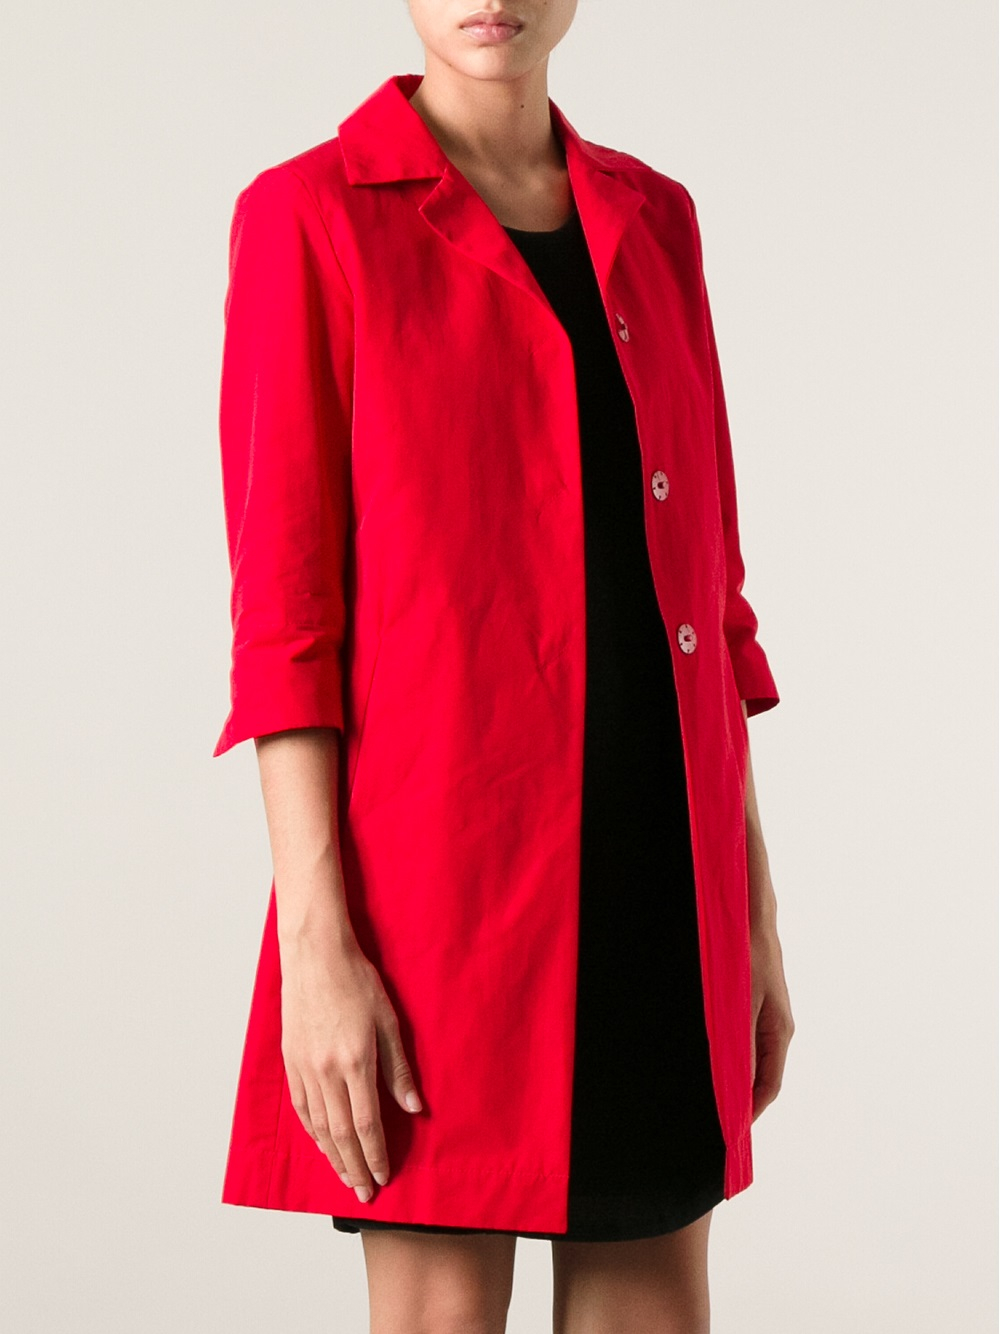 Herno three quarter sleeve coat Release Dates Cheap Online Discount Collections Shopping Online With Mastercard Cheap Sale Order Buy Cheap With Mastercard tRVYxVlz4